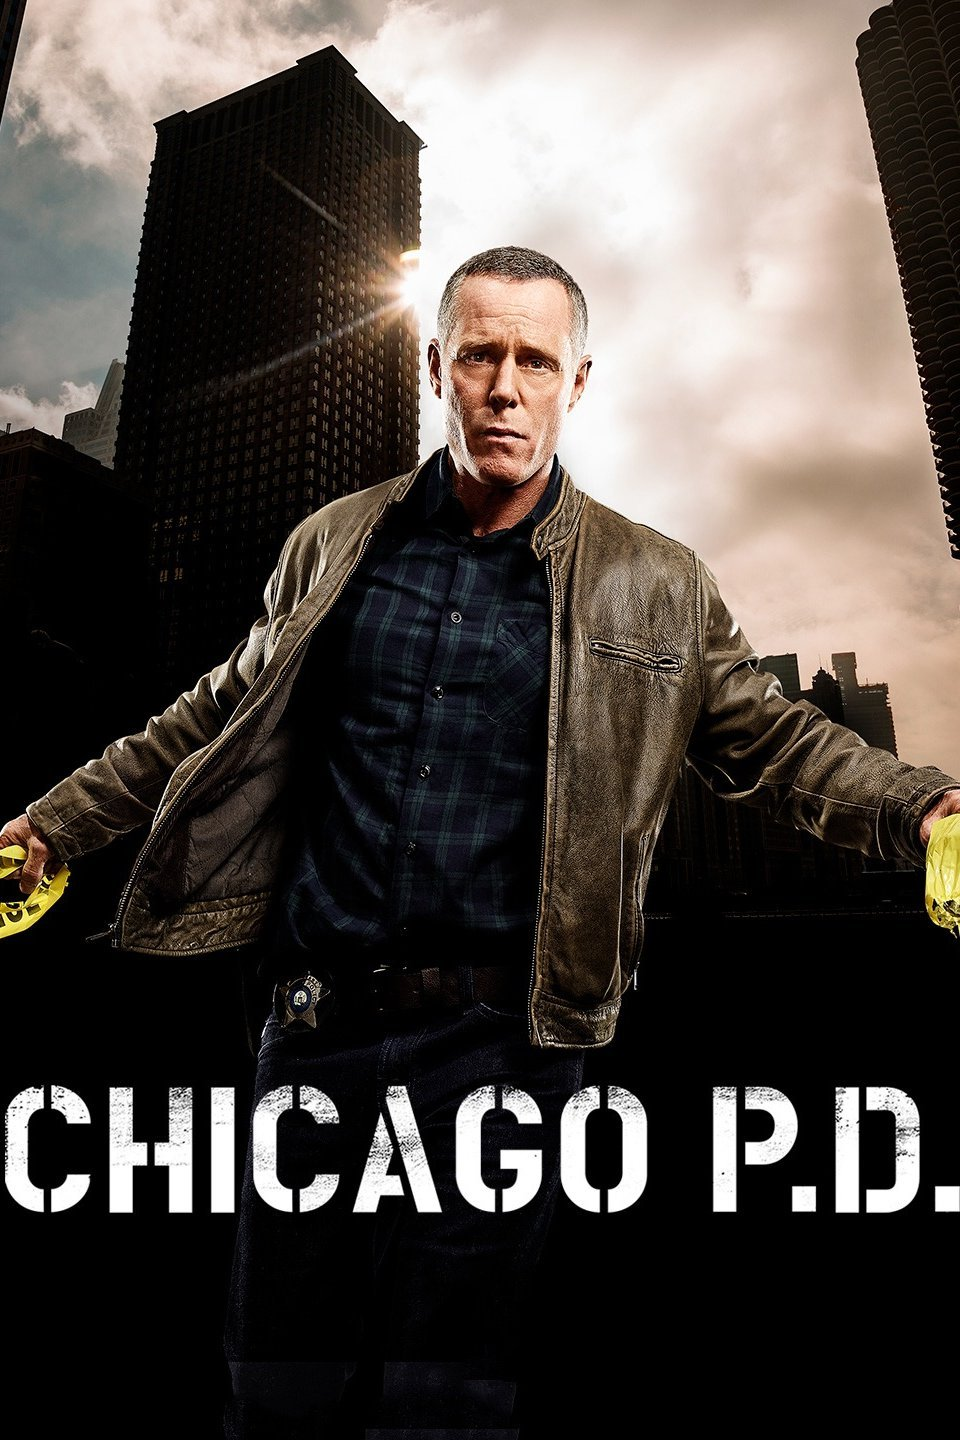 Chicago PD Season 5 Episode 18 Download HDTV